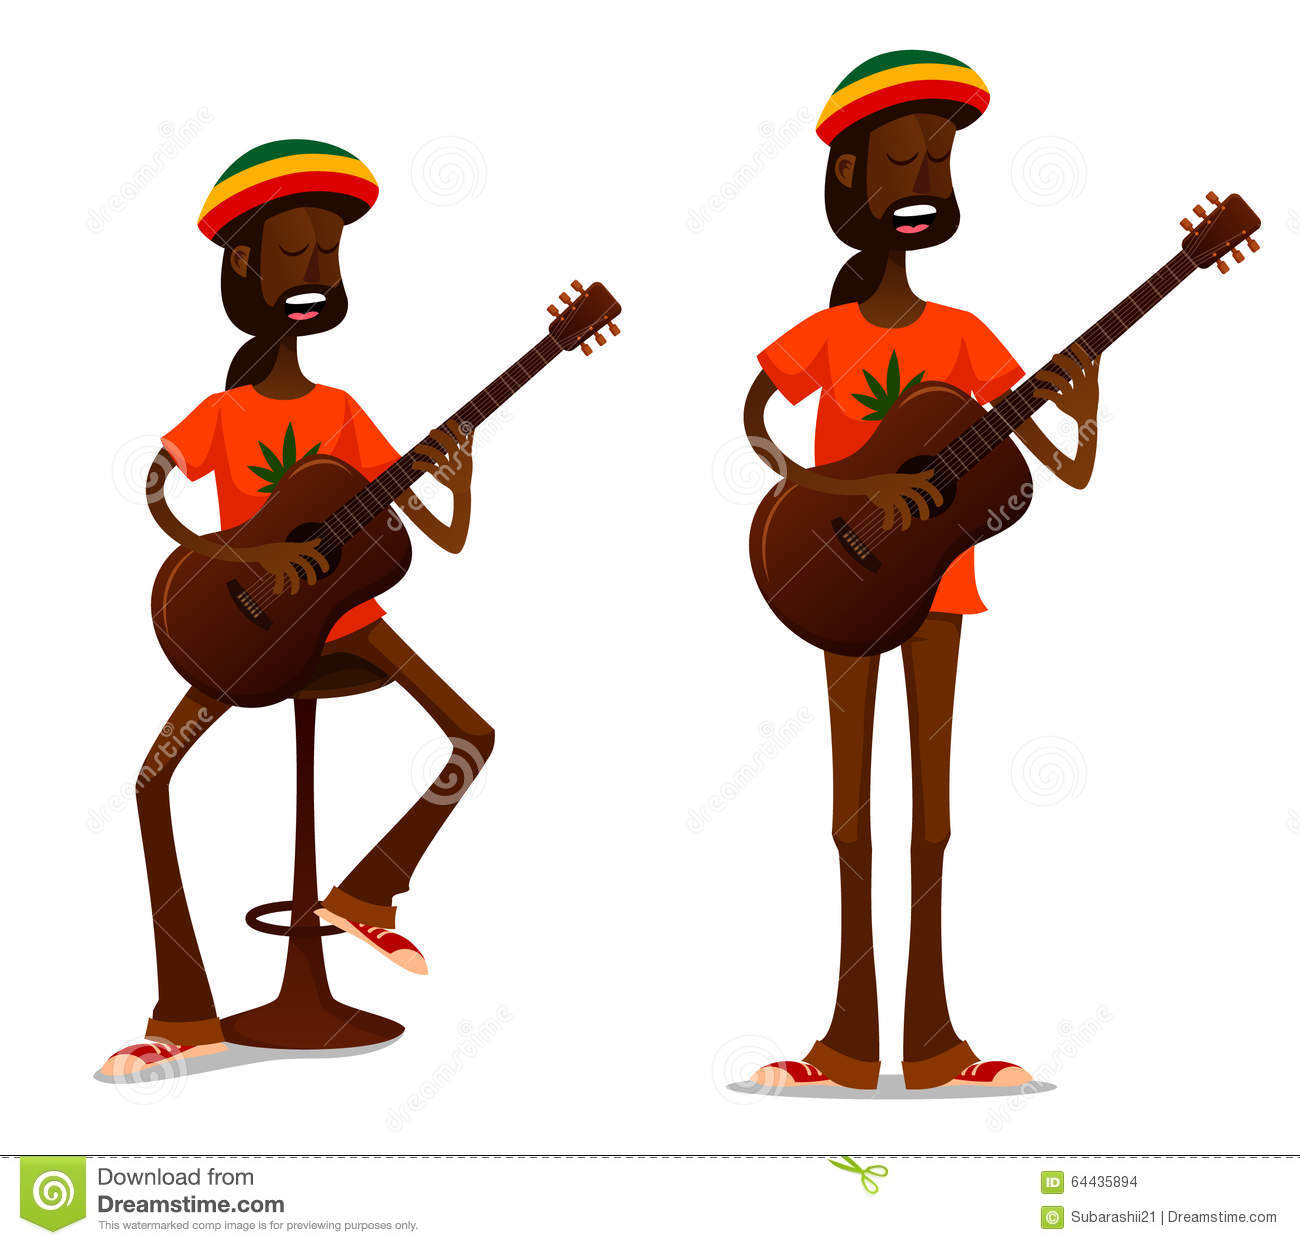 Cool Jamaican Guy Playing Guitar Stock Vector Image  : cool jamaican guy playing guitar cartoon illustration sitting bar stool 64435894 from dreamstime.com size 1300 x 1245 jpeg 112kB